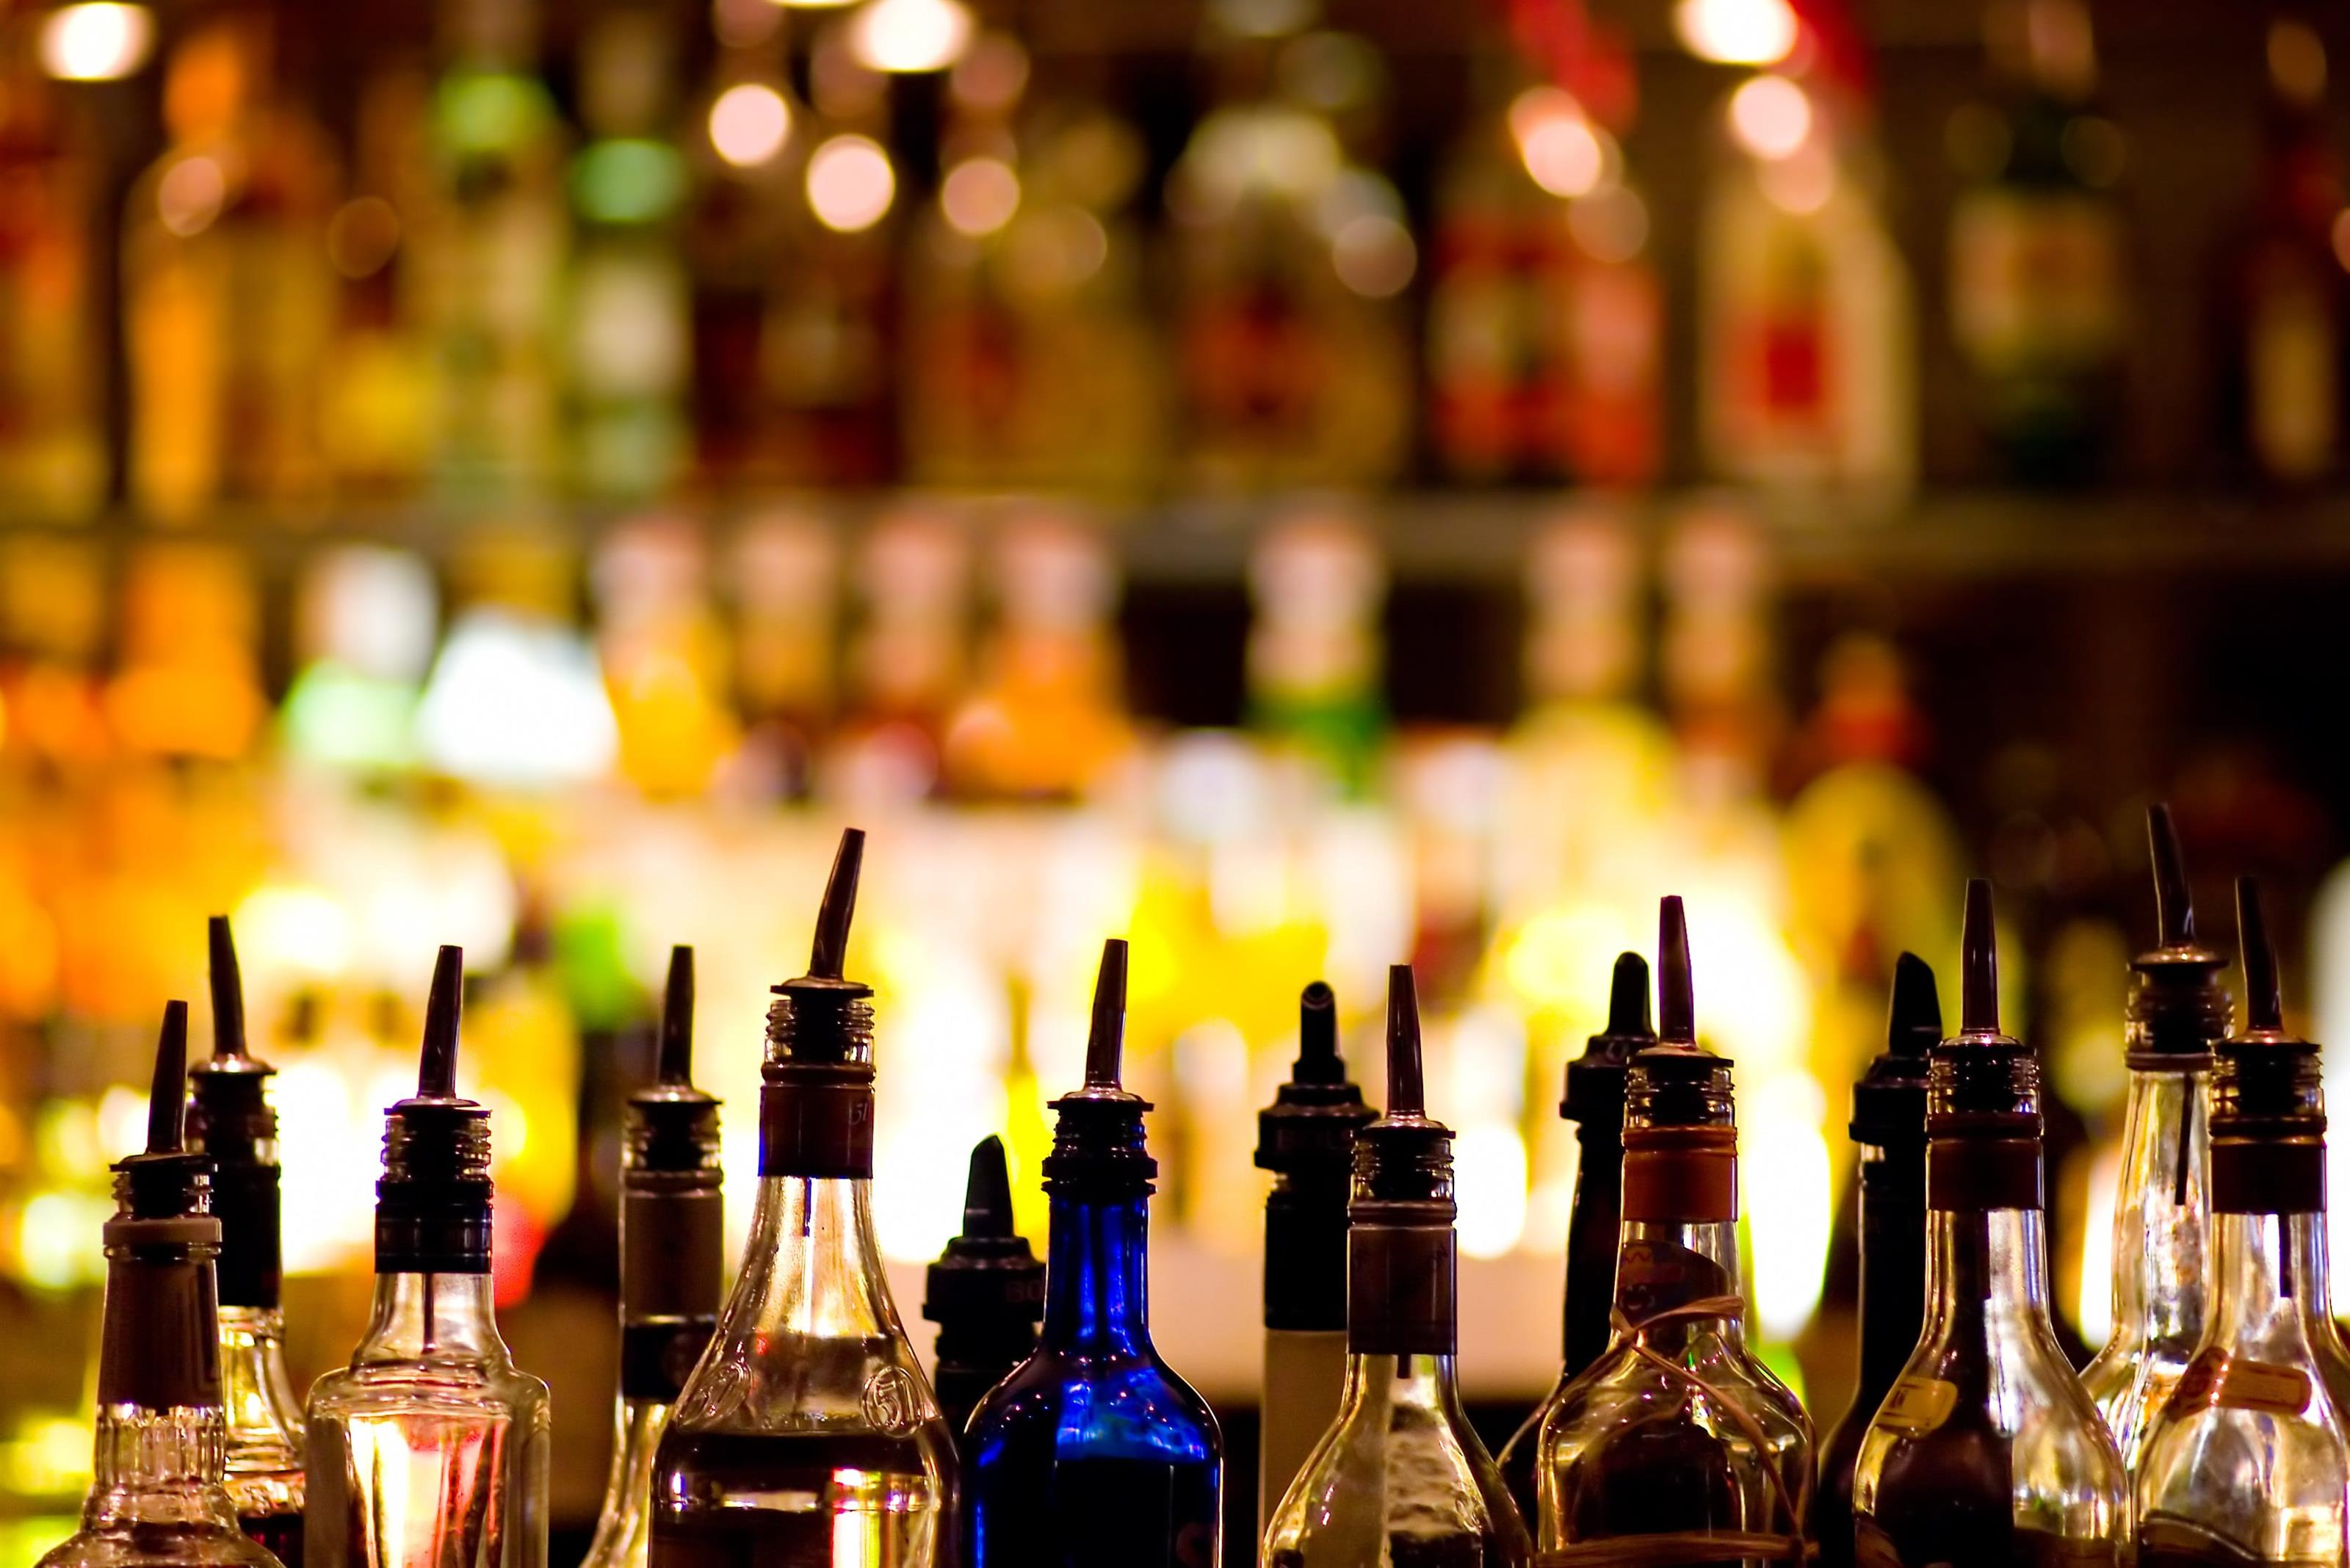 Bottles of liquor lined up in front of a bar